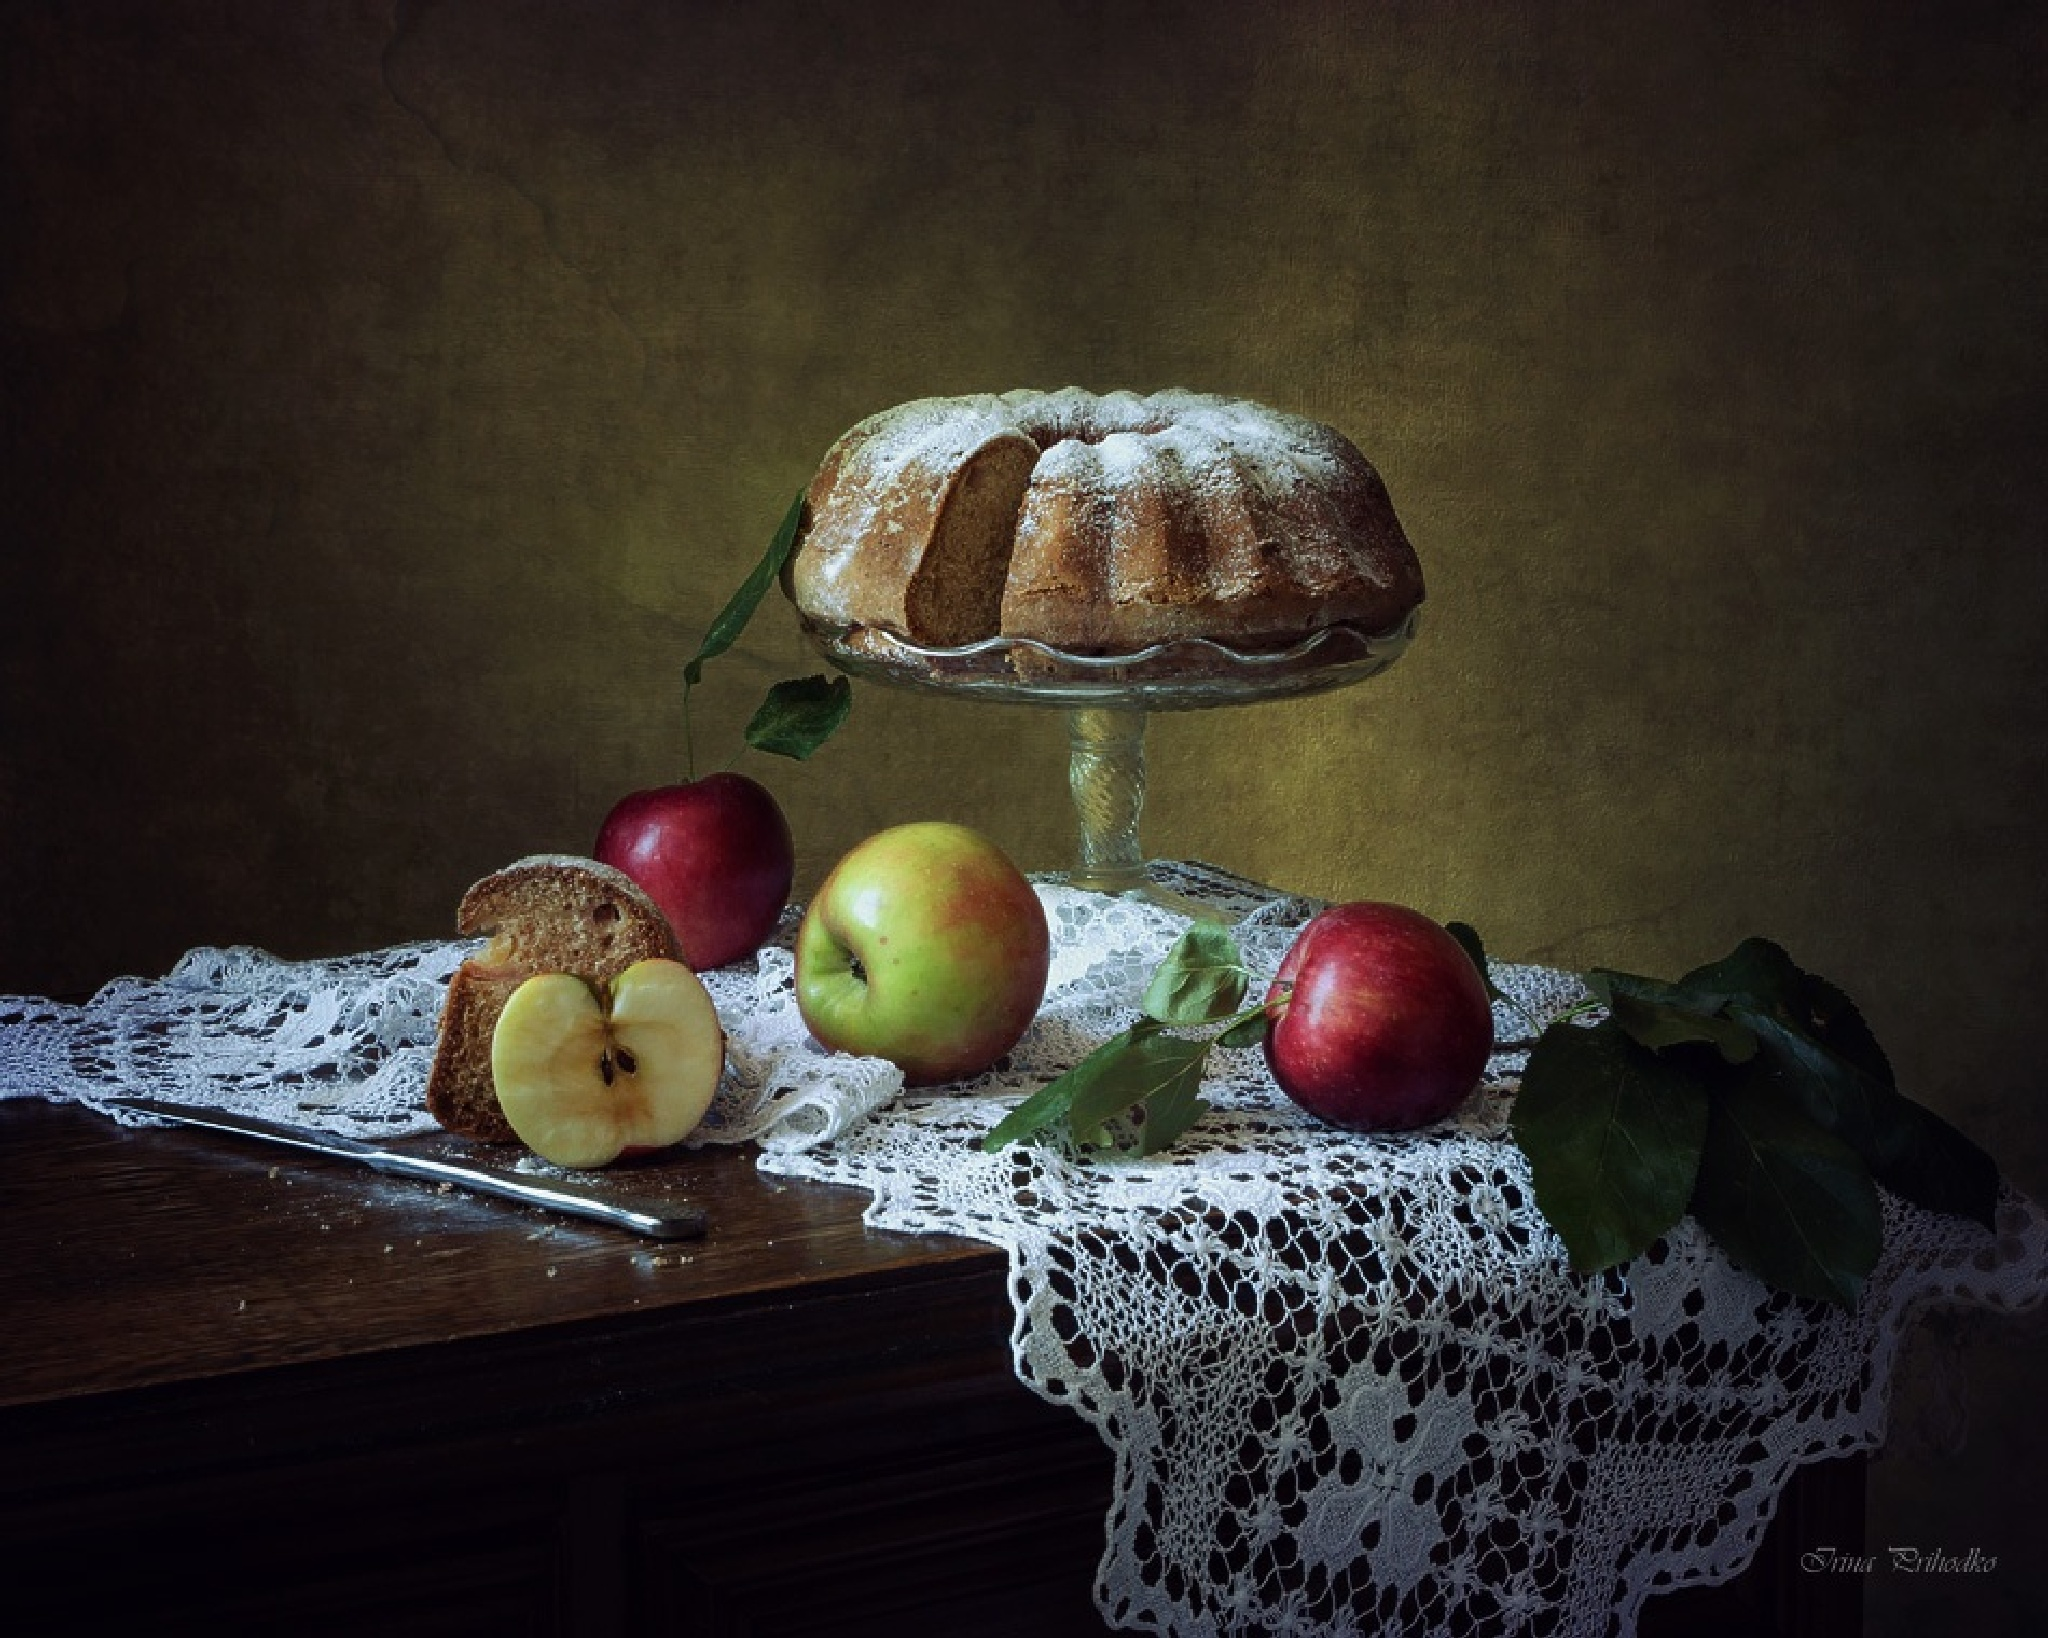 About apples and apple pie by Prikhodko Irina